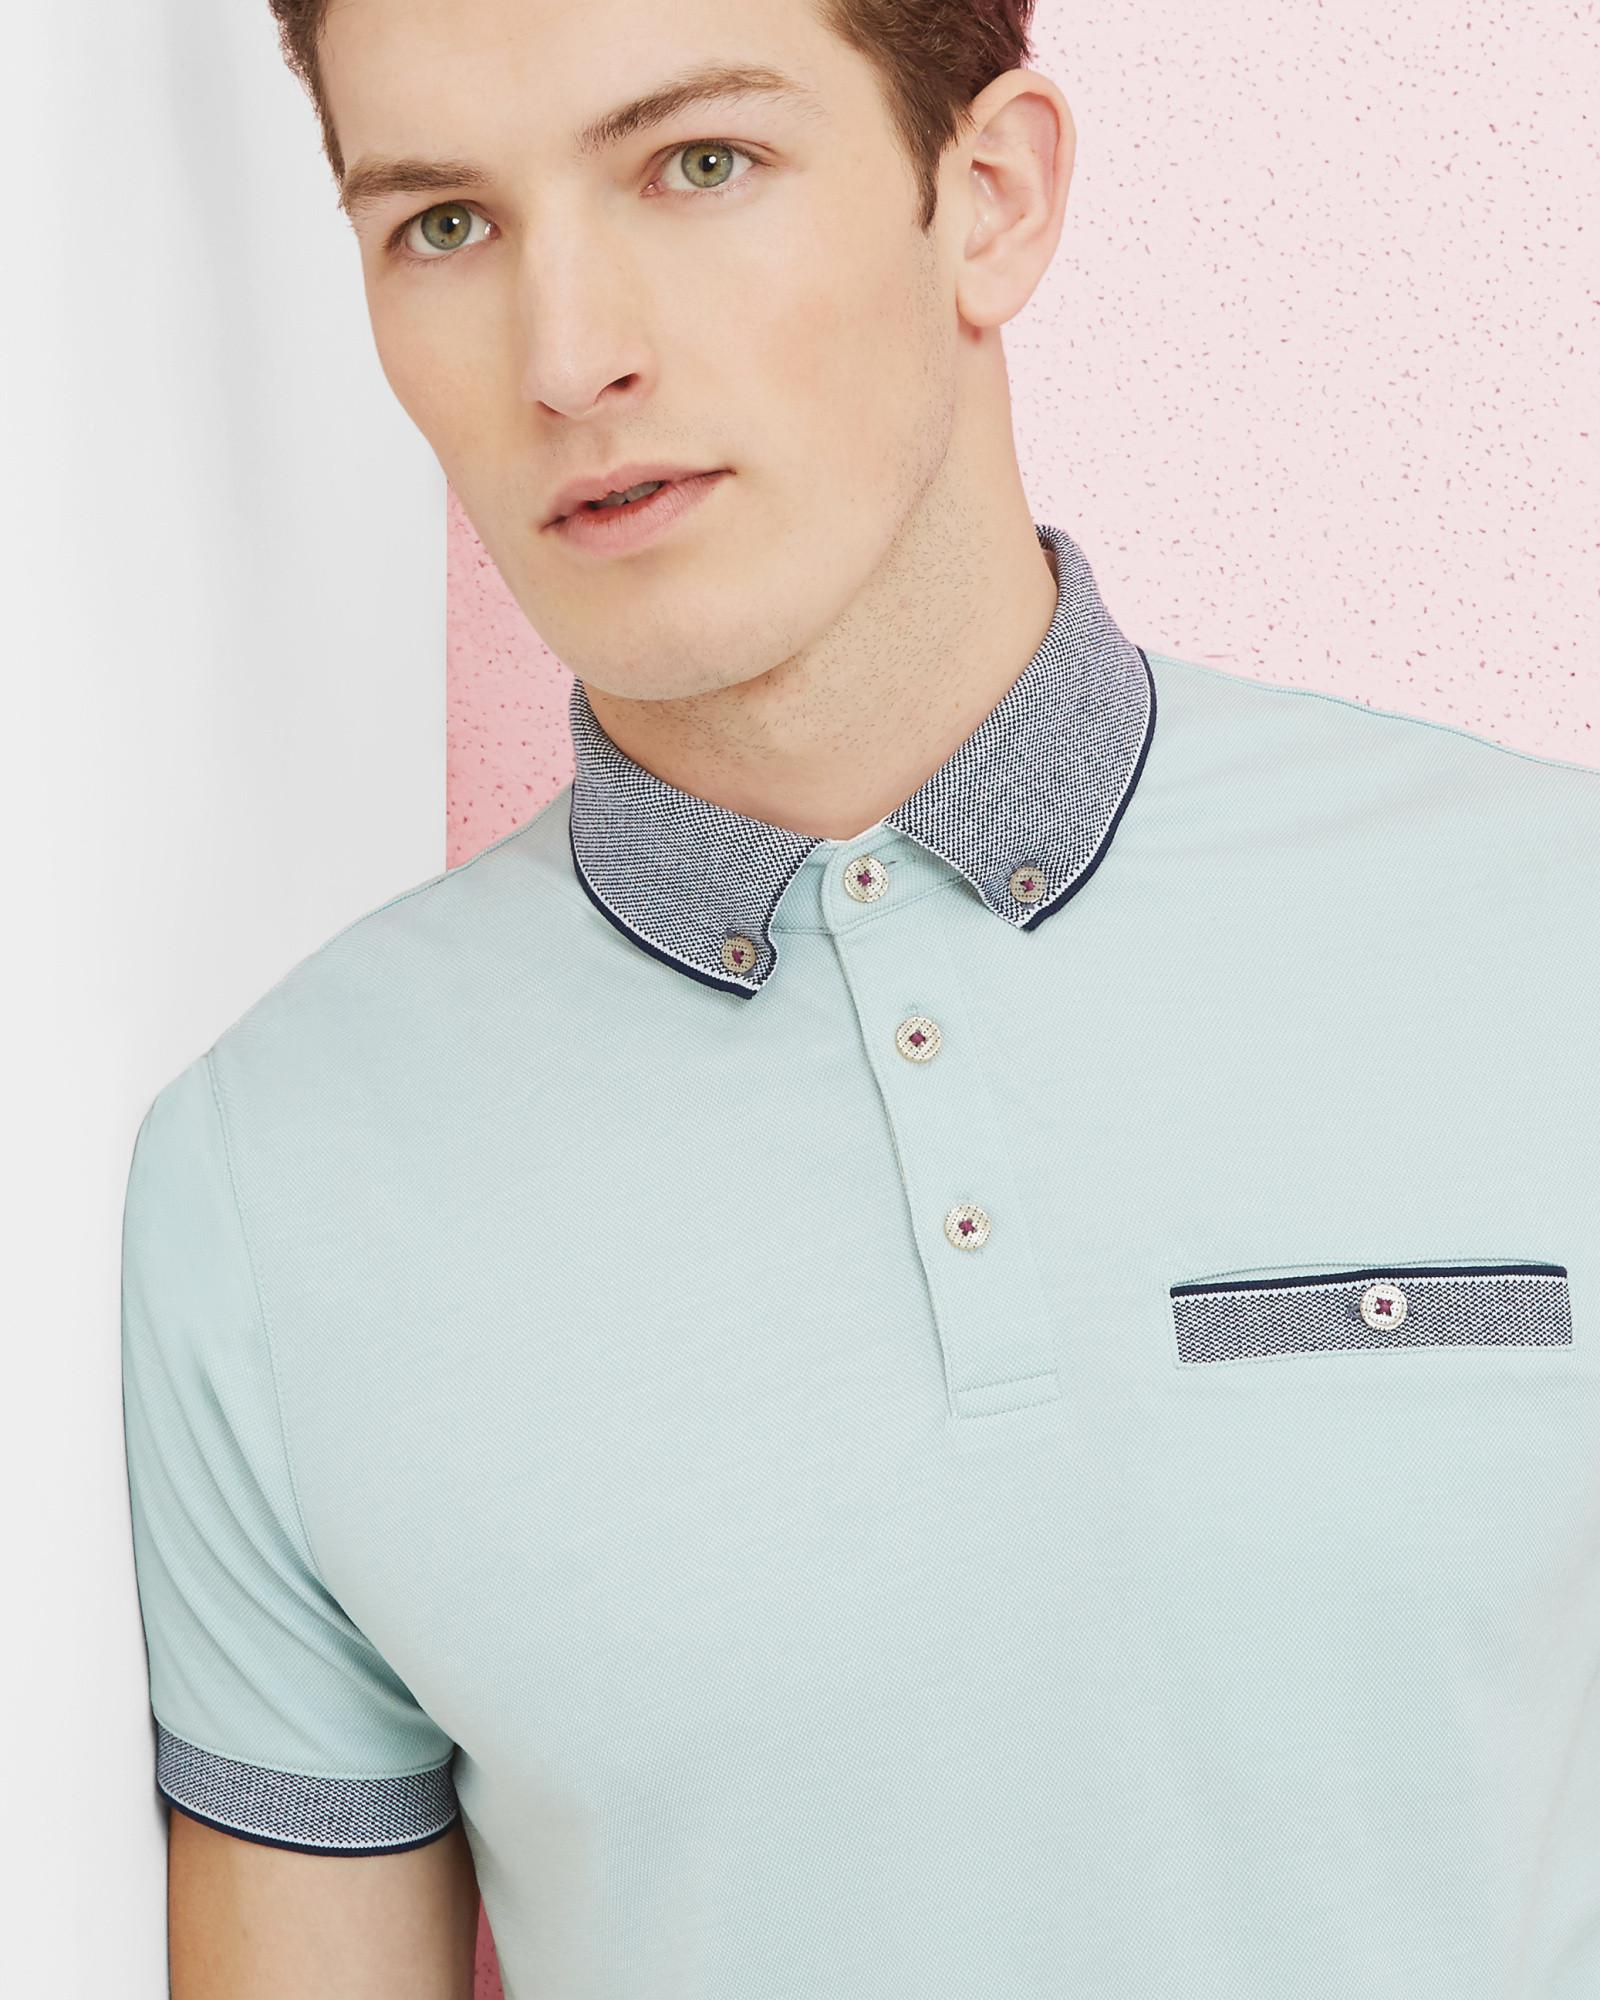 53e9305f7911ec Ted Baker Oxford Flat Knit Polo Shirt for Men - Lyst